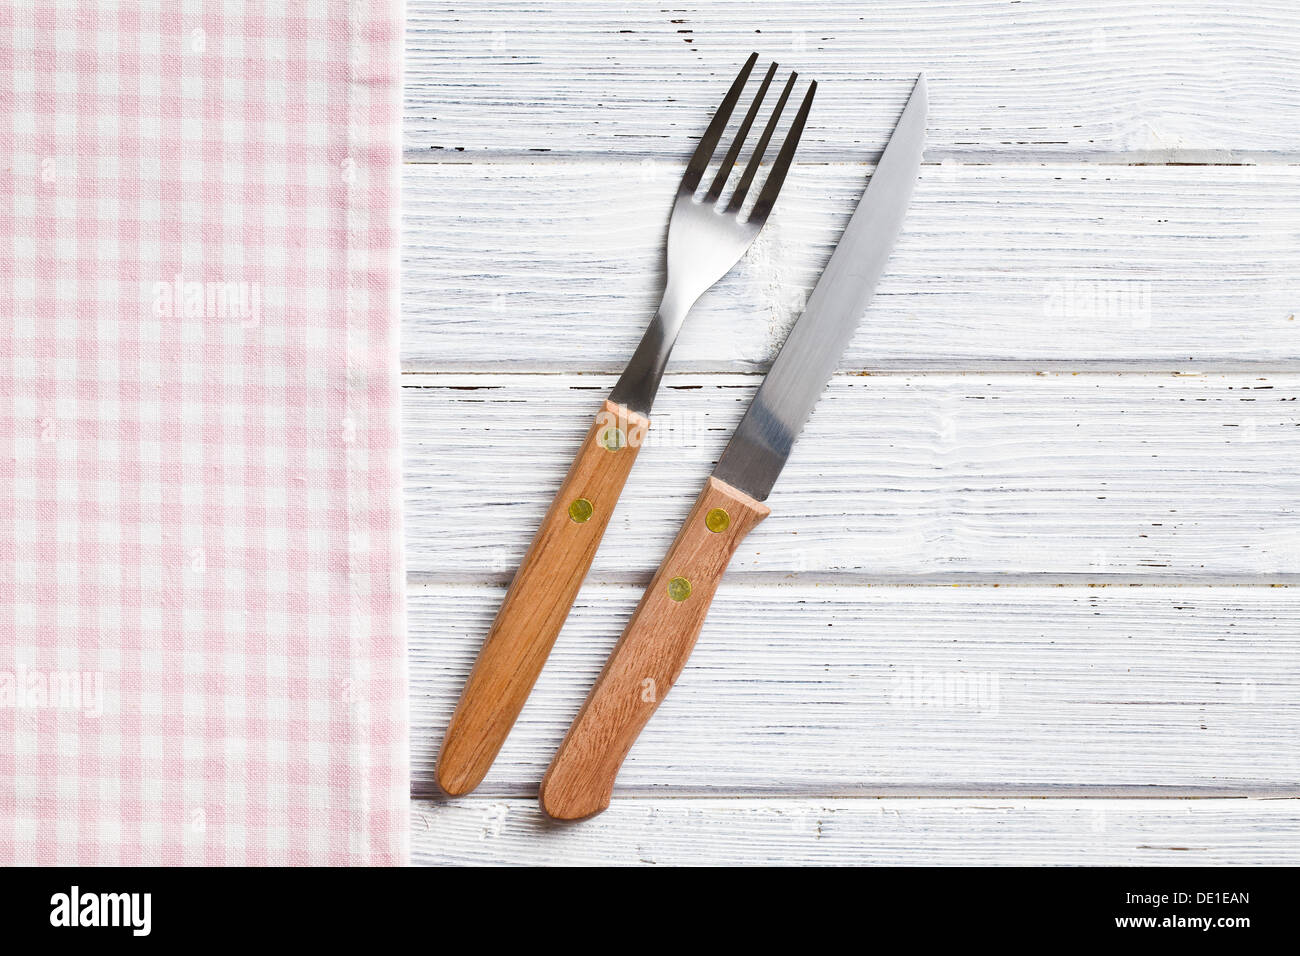 the knife and fork on wooden table - Stock Image